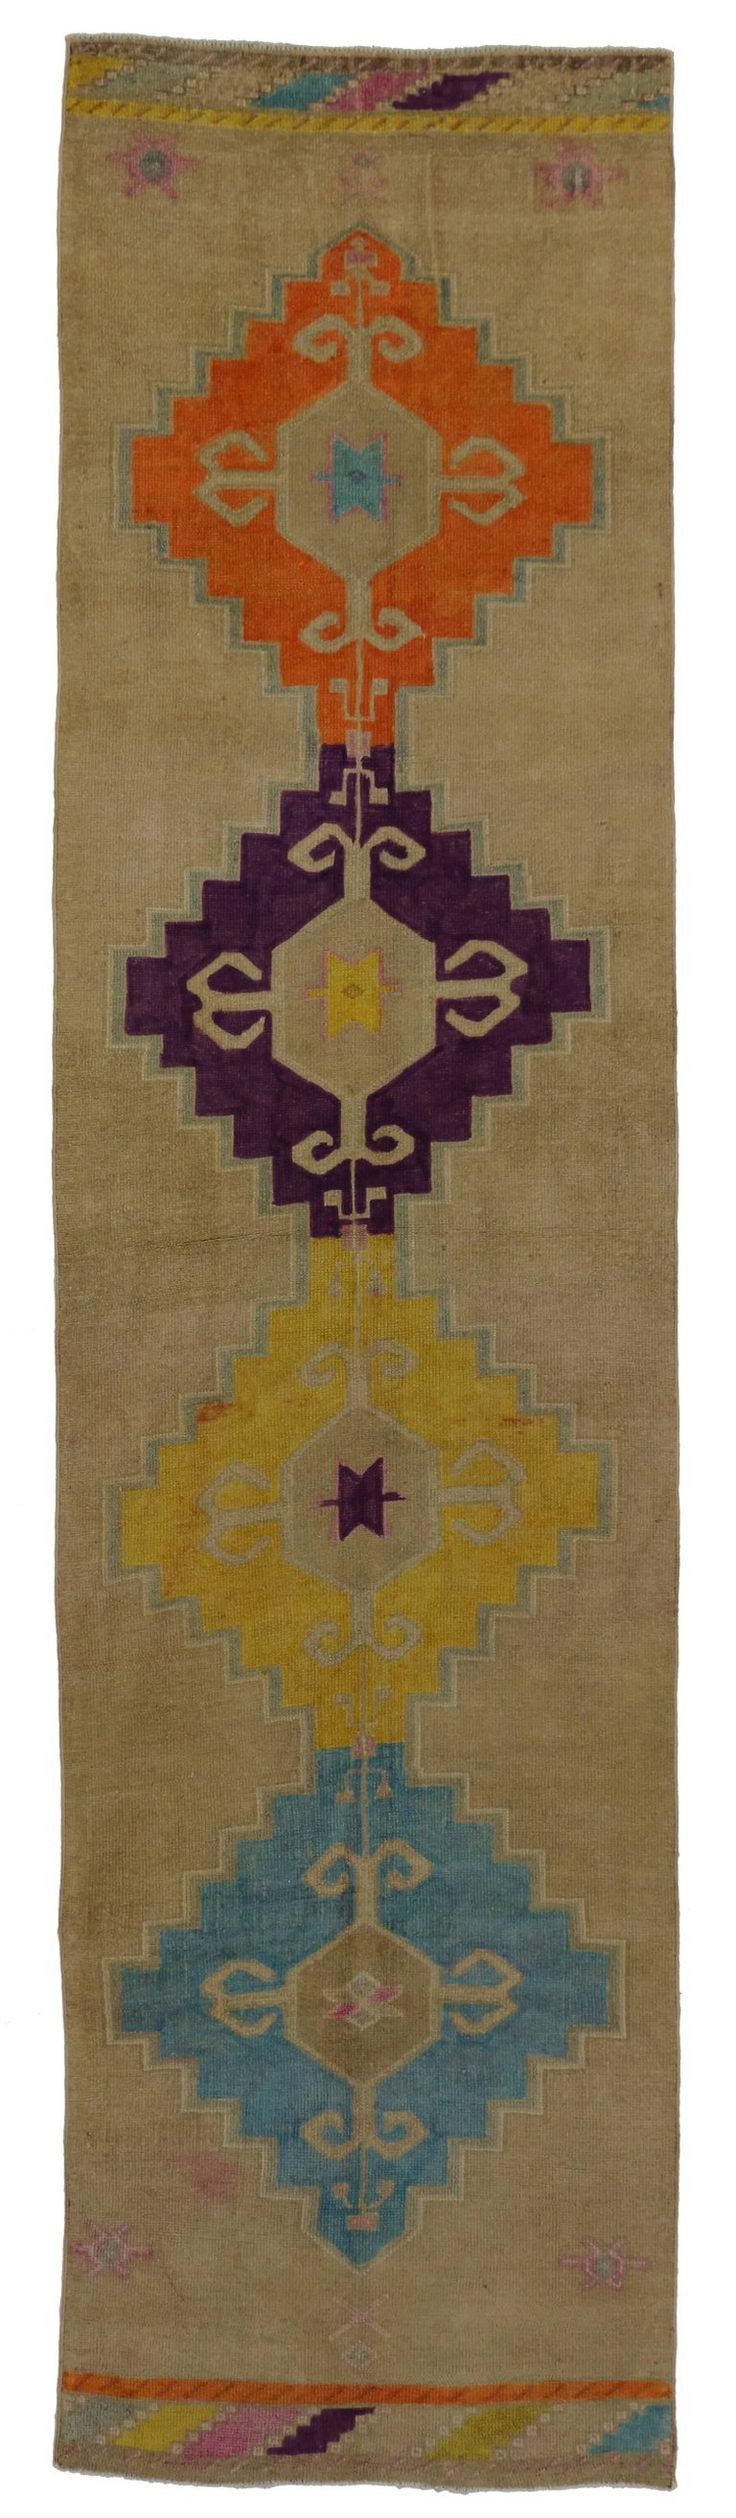 Vintage Turkish Oushak Runner with Modern Contemporary Style, Painted Oushak Rug   From a unique collection of antique and modern turkish rugs at https://www.1stdibs.com/furniture/rugs-carpets/turkish-rugs/